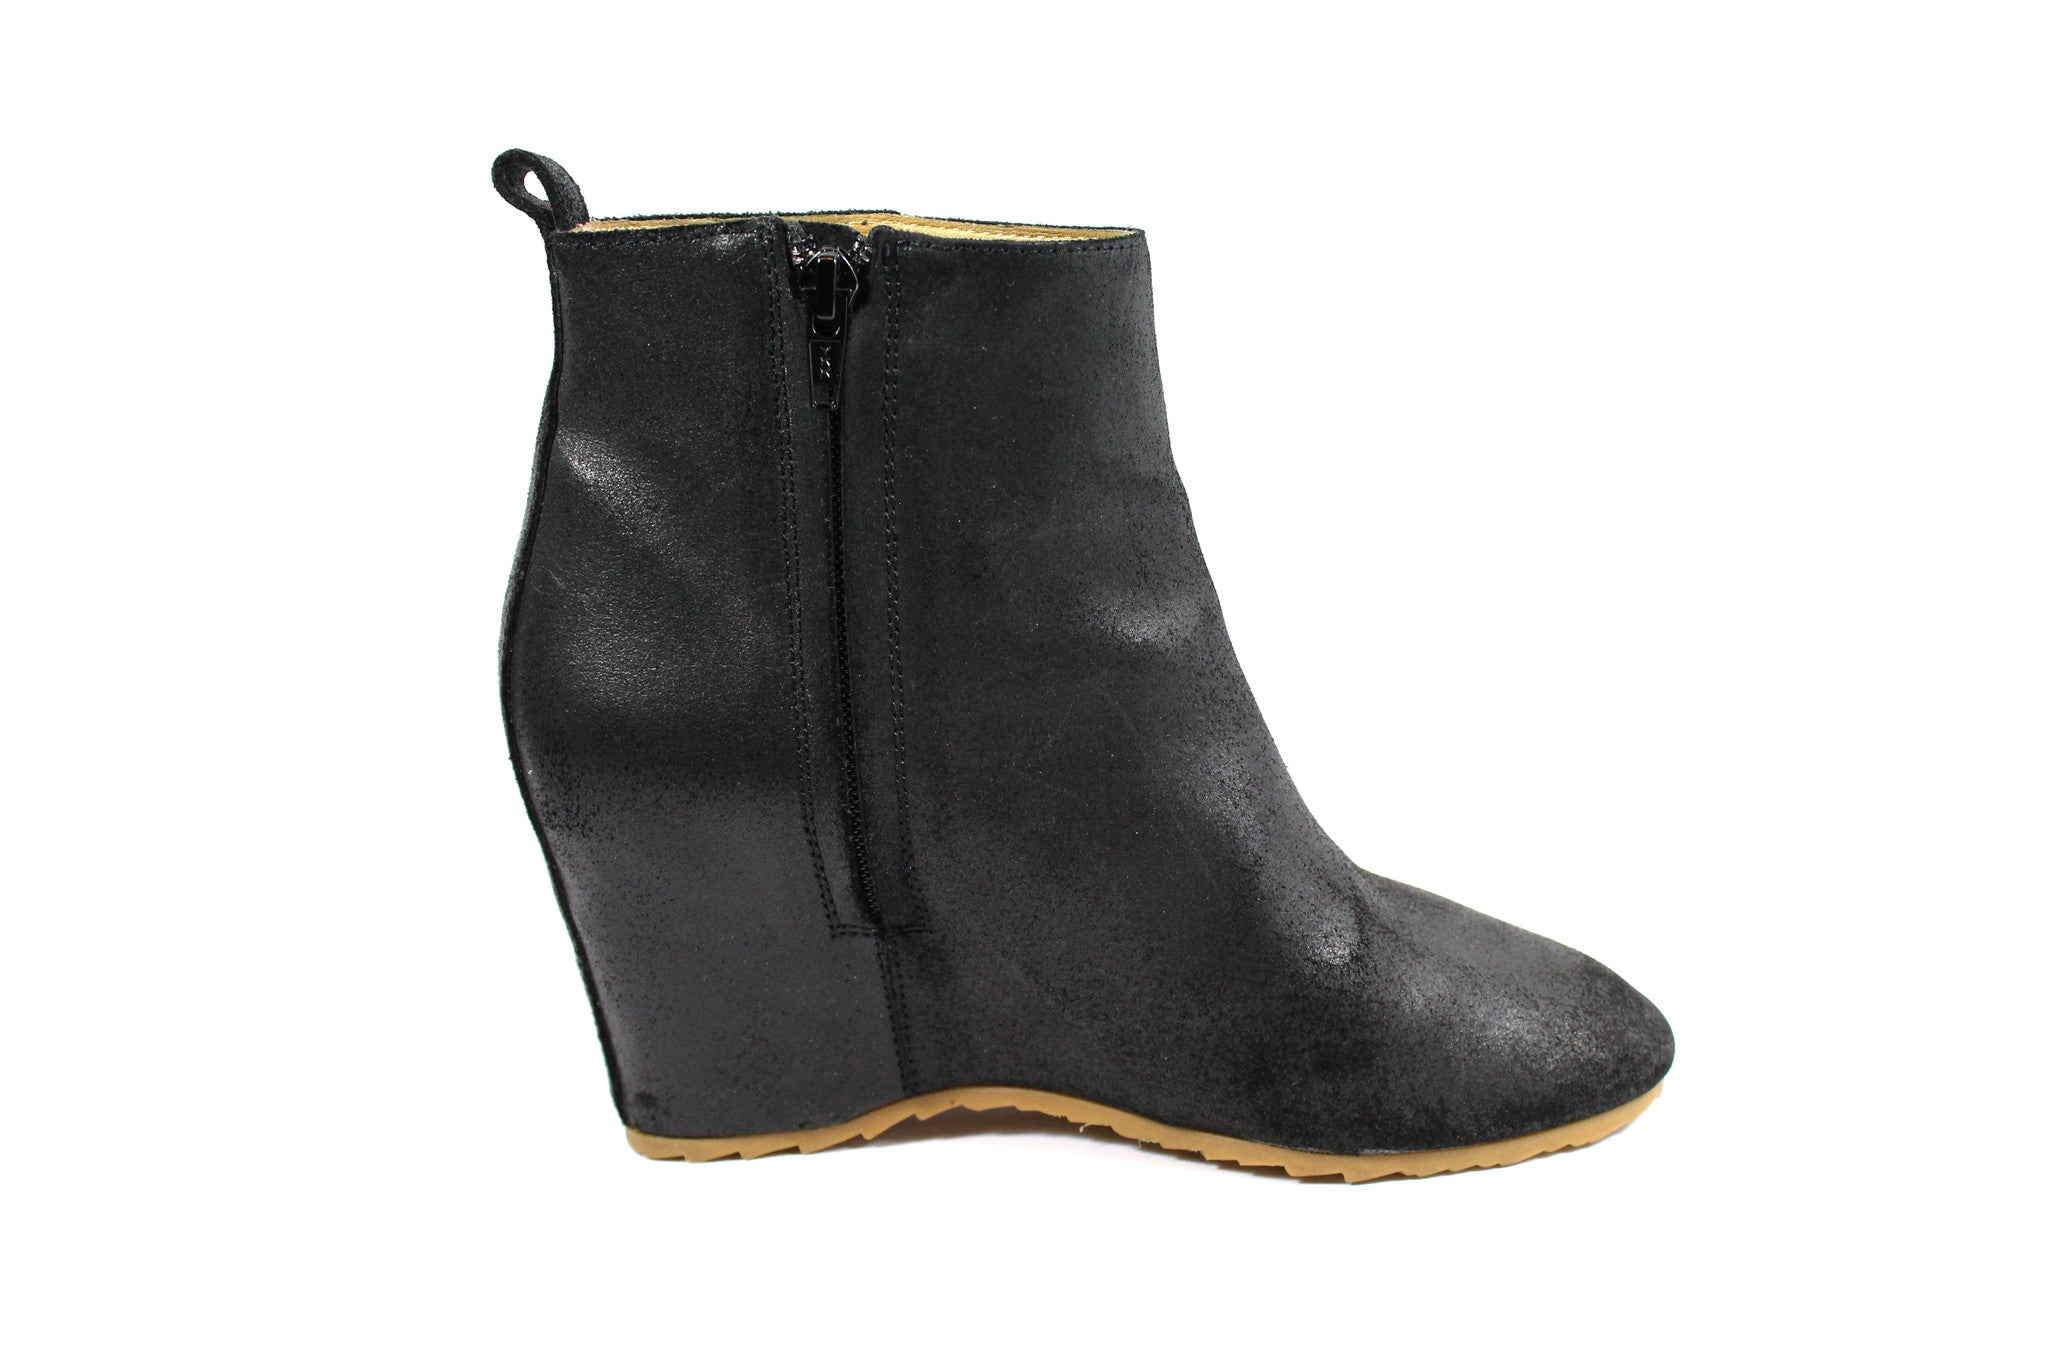 MM6 Maison Margiela Wedge Booties - Encore Consignment - 6